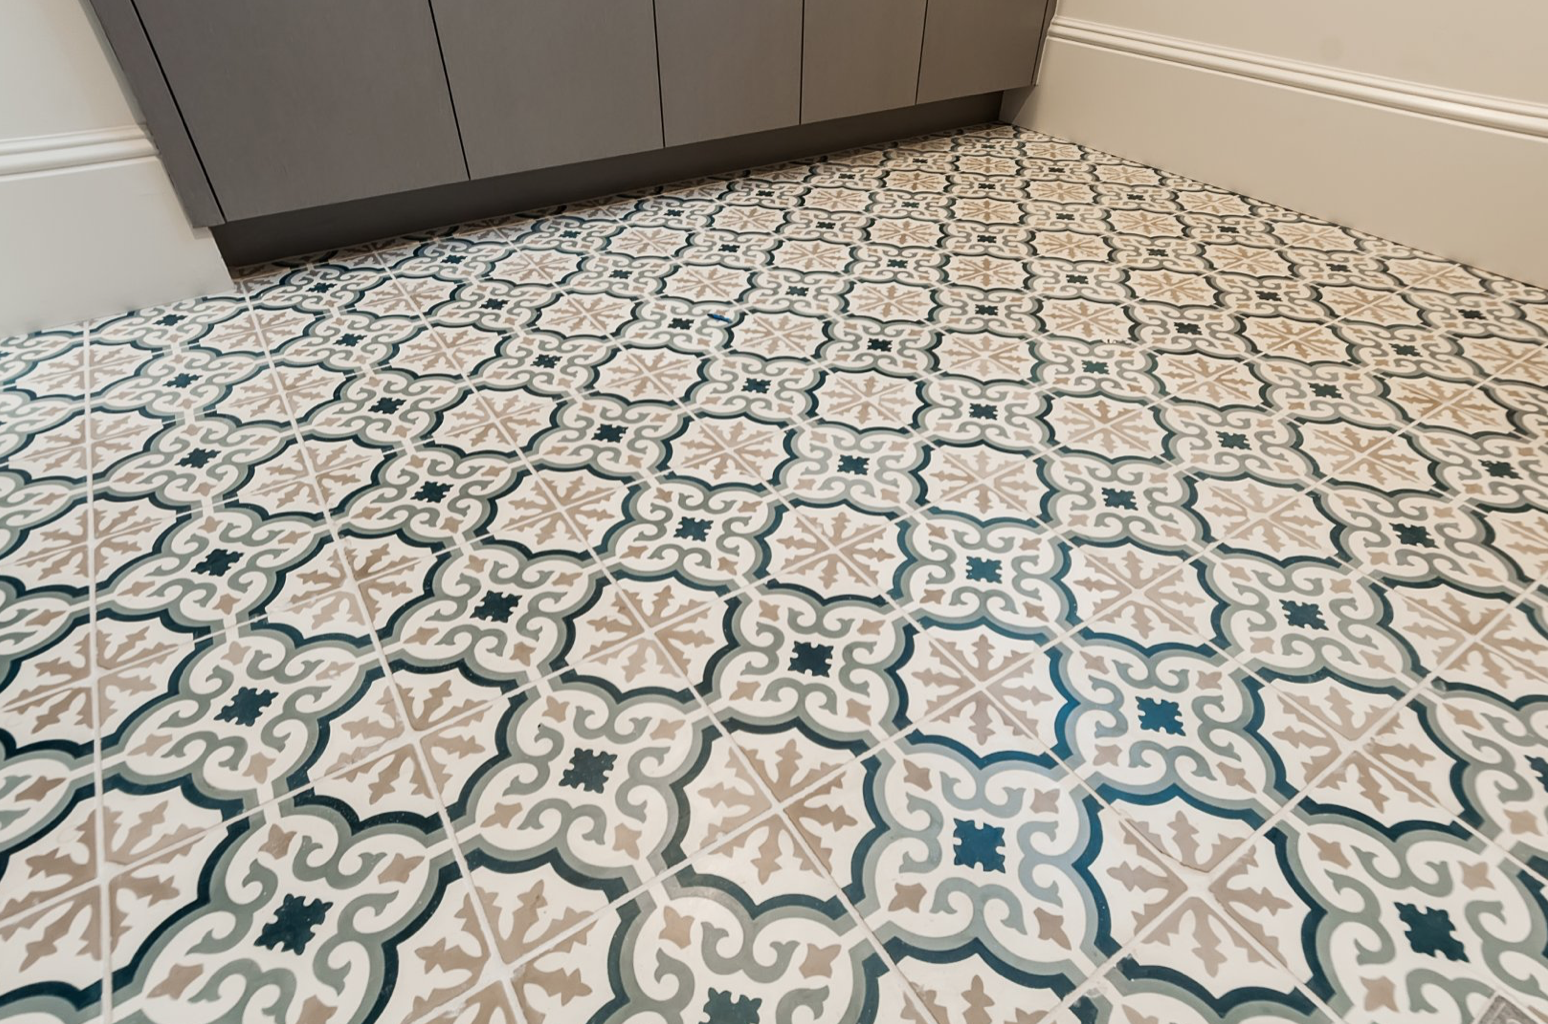 ceramic mosaic tile flooring in modern coastal farmhouse bathroom